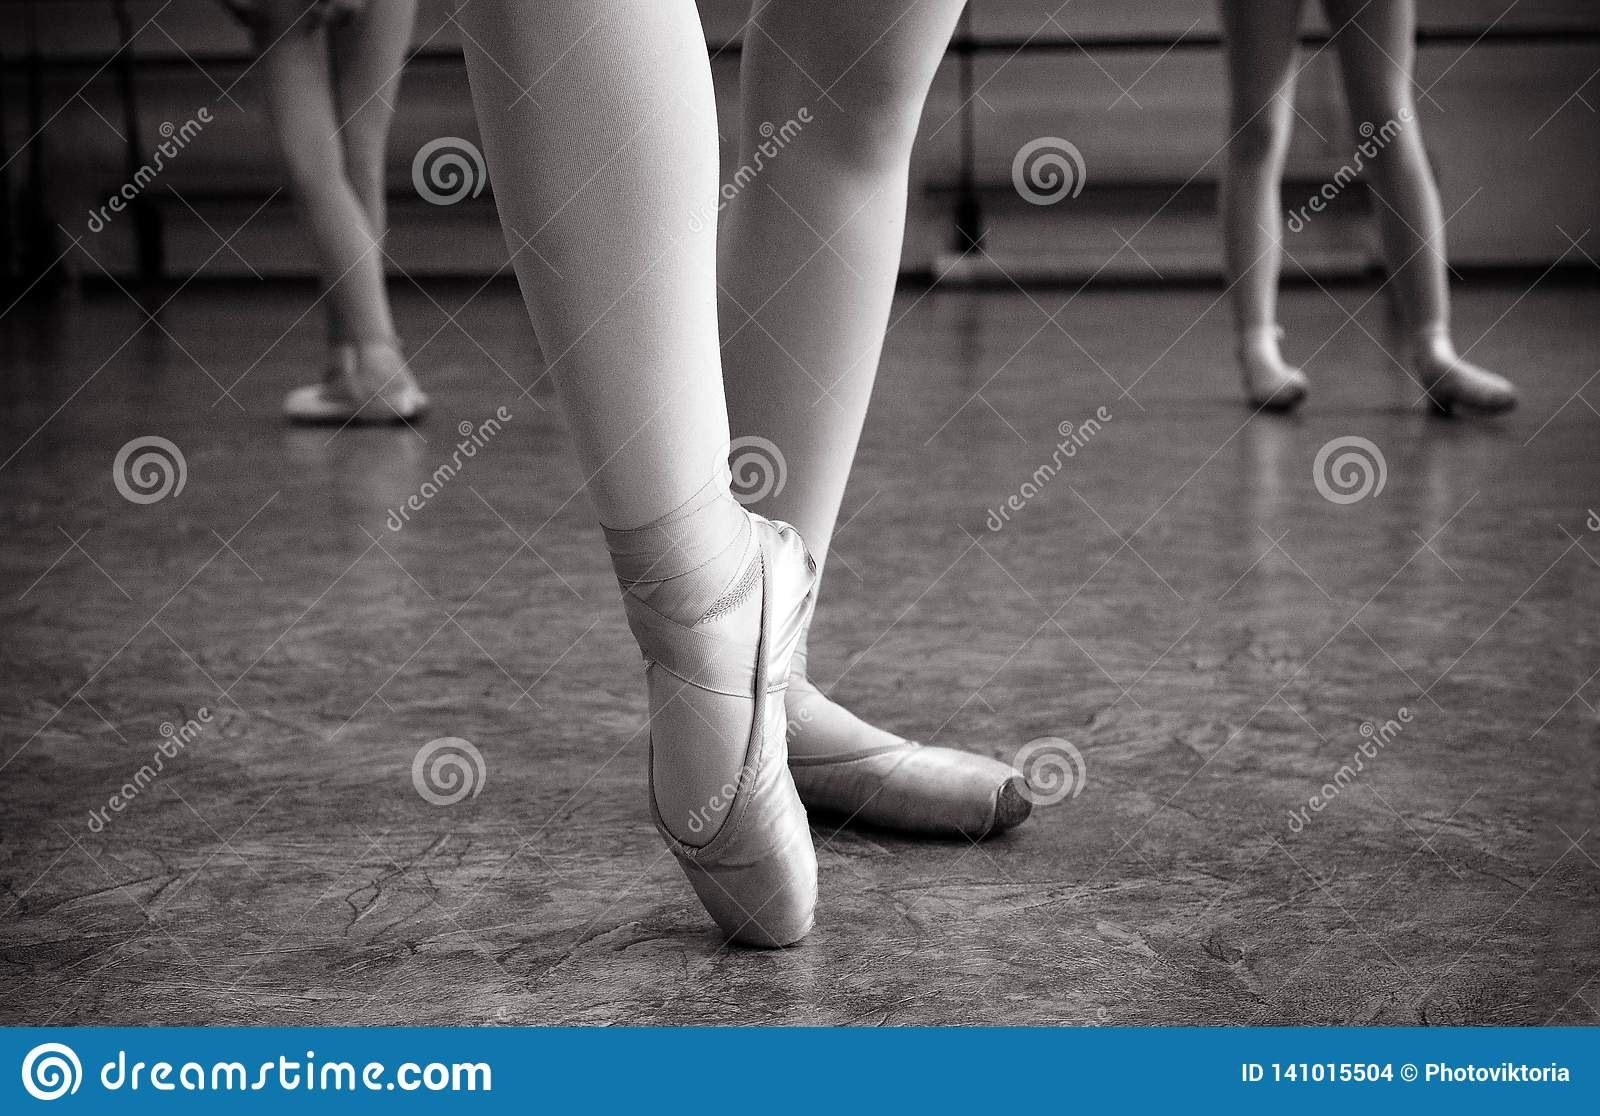 Close-up of ballerina feet on pointe shoes in the dance hall. Vintage photography. Close-up of a ballerina in the dance hall.